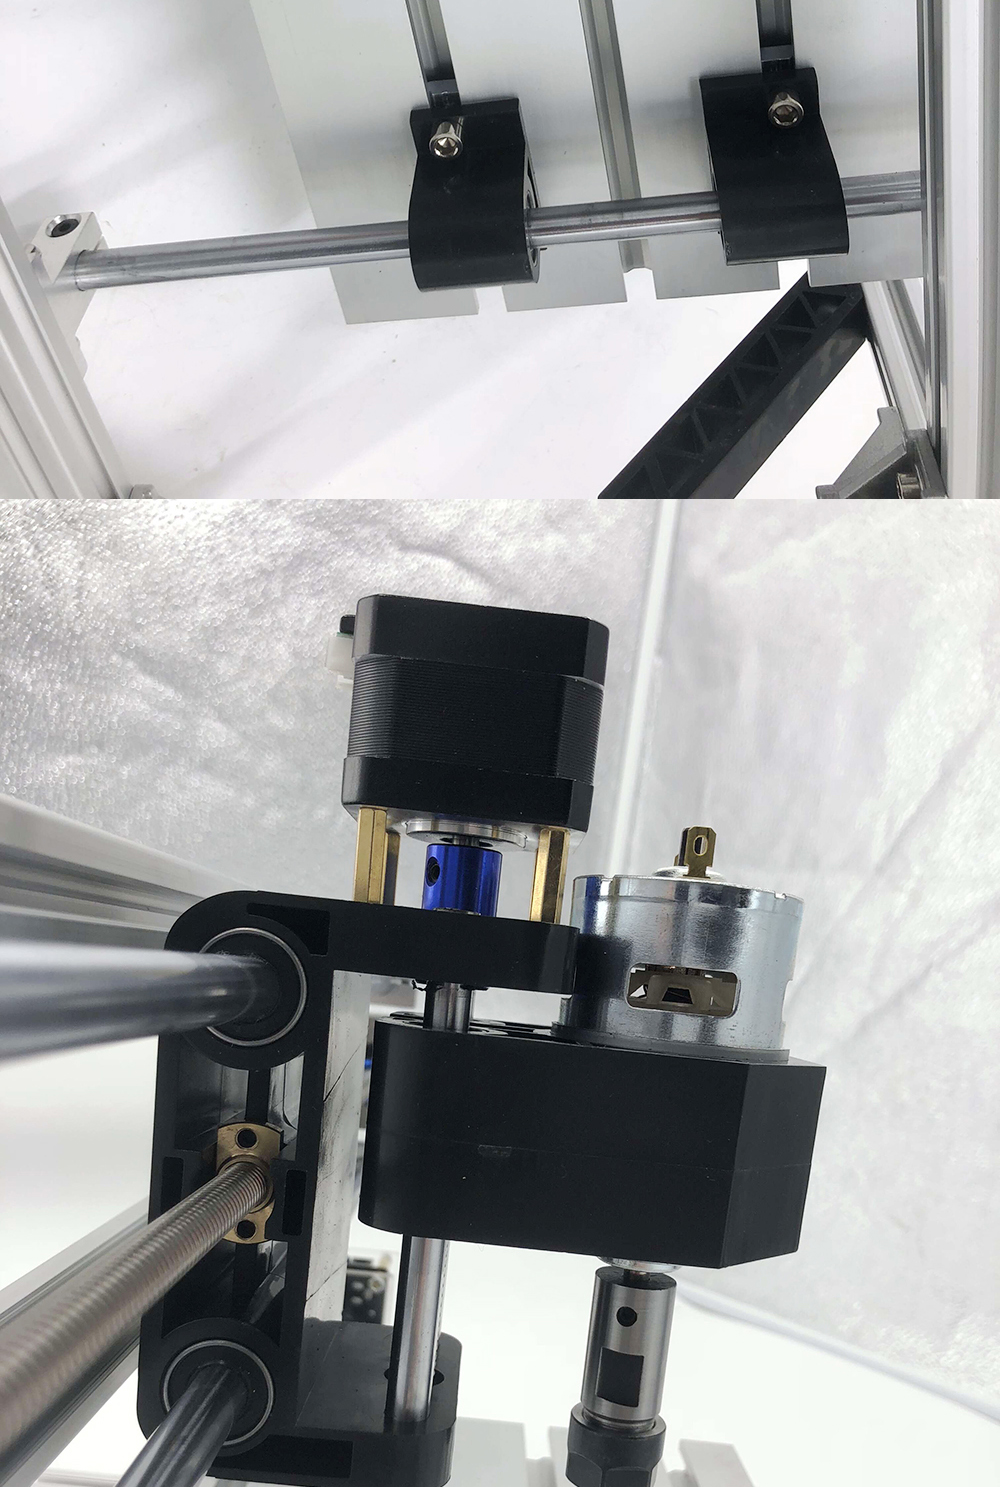 CNC Engraving Machine/Pcb Milling Machine/Wood Router 15